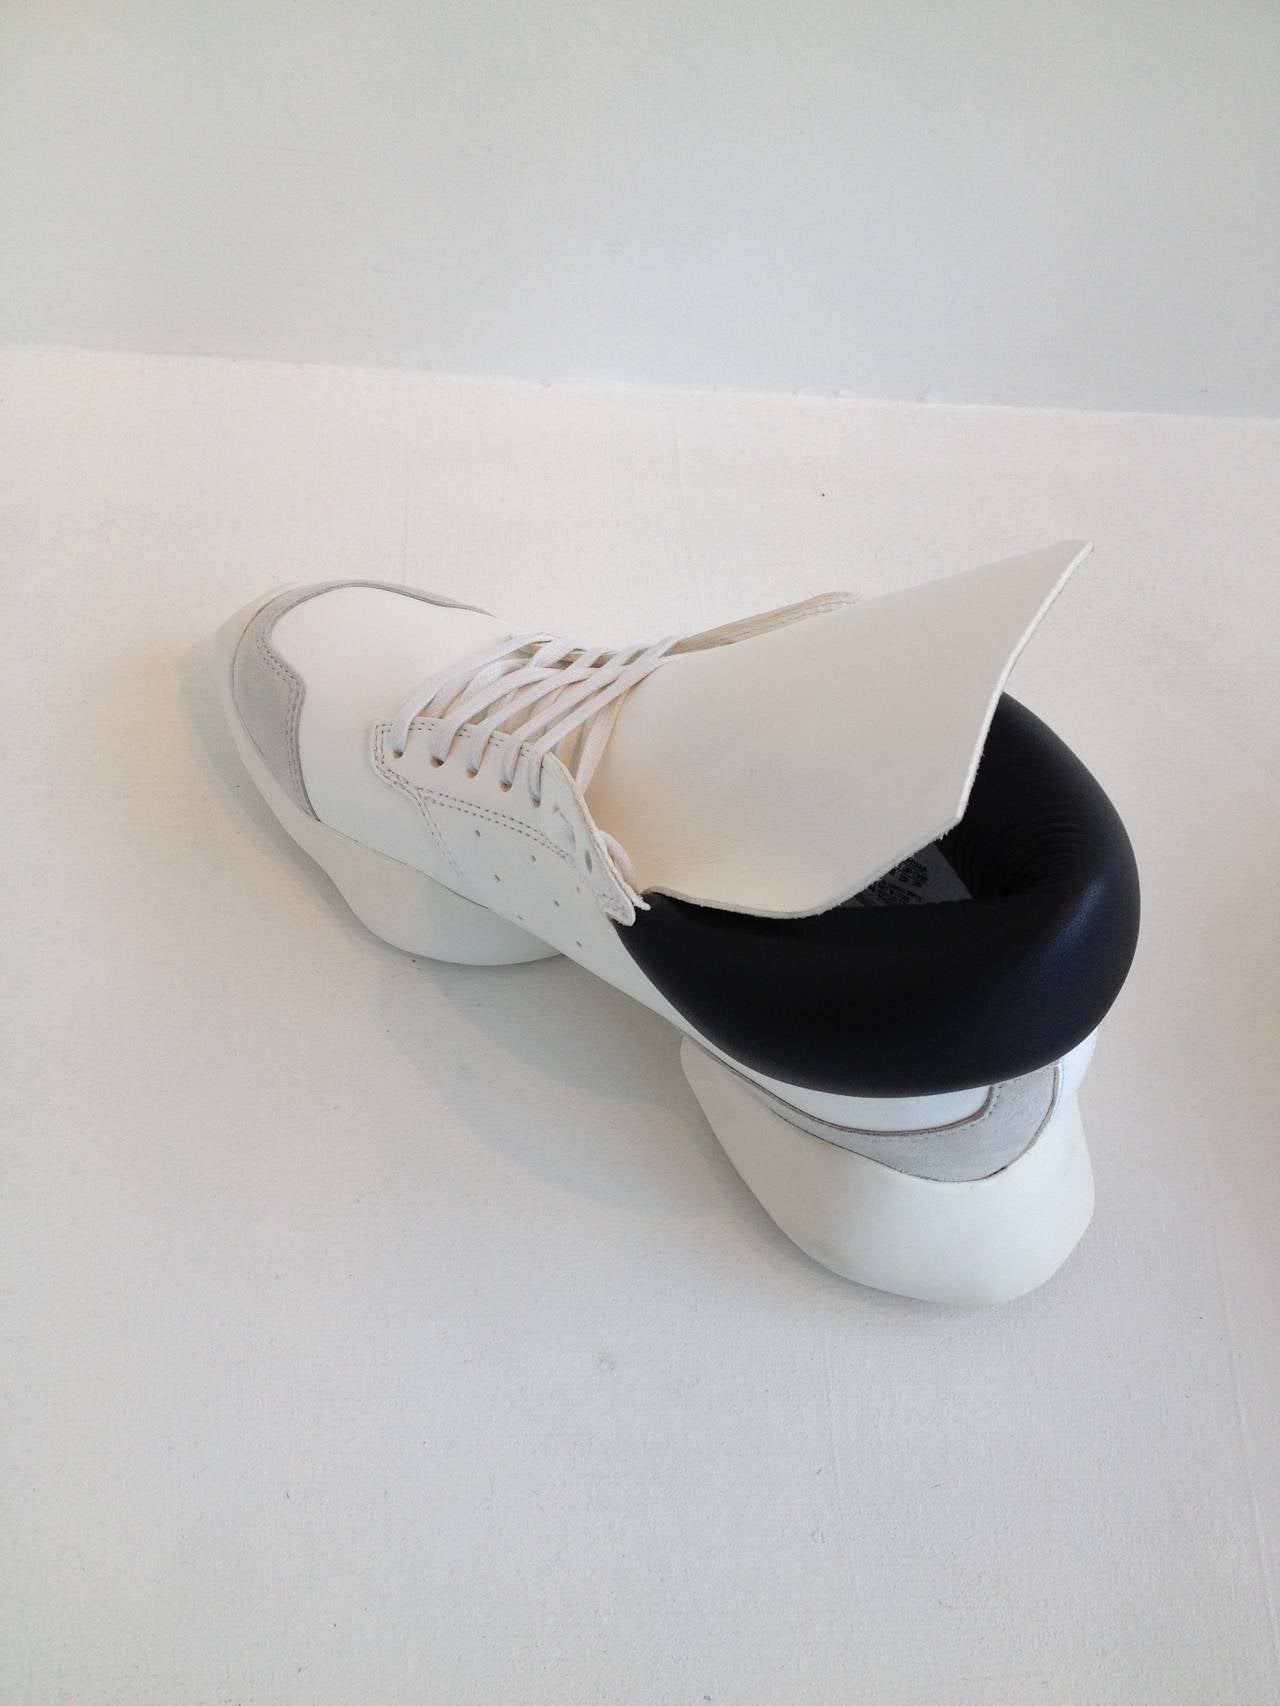 Rick Owens for Adidas White Puffy Sneakers In New Condition For Sale In San Francisco, CA